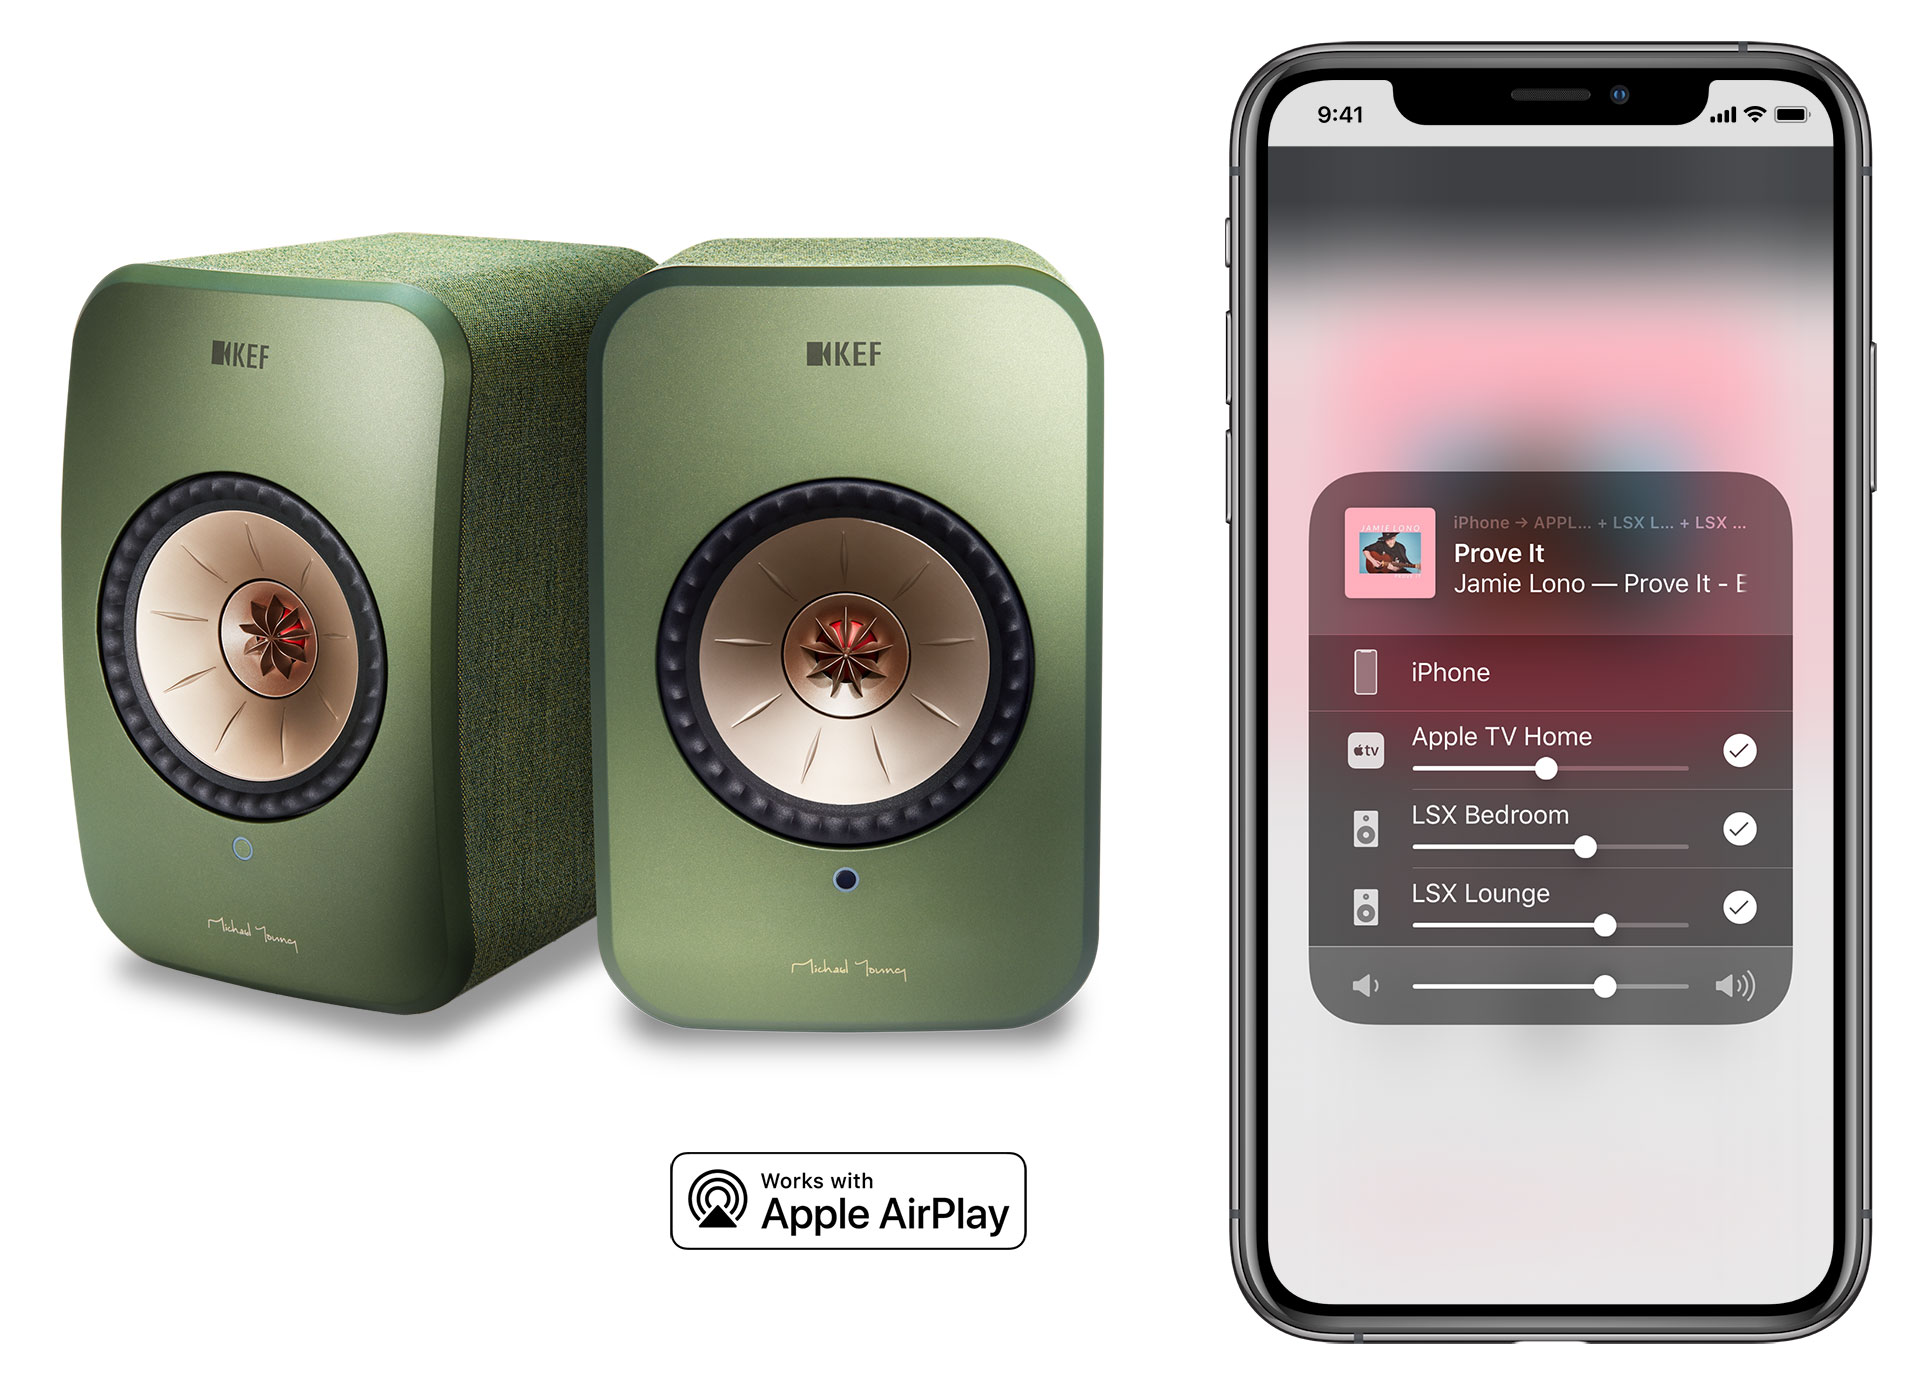 AirPlay 2 is now available for the KEF LSX Wireless speakers